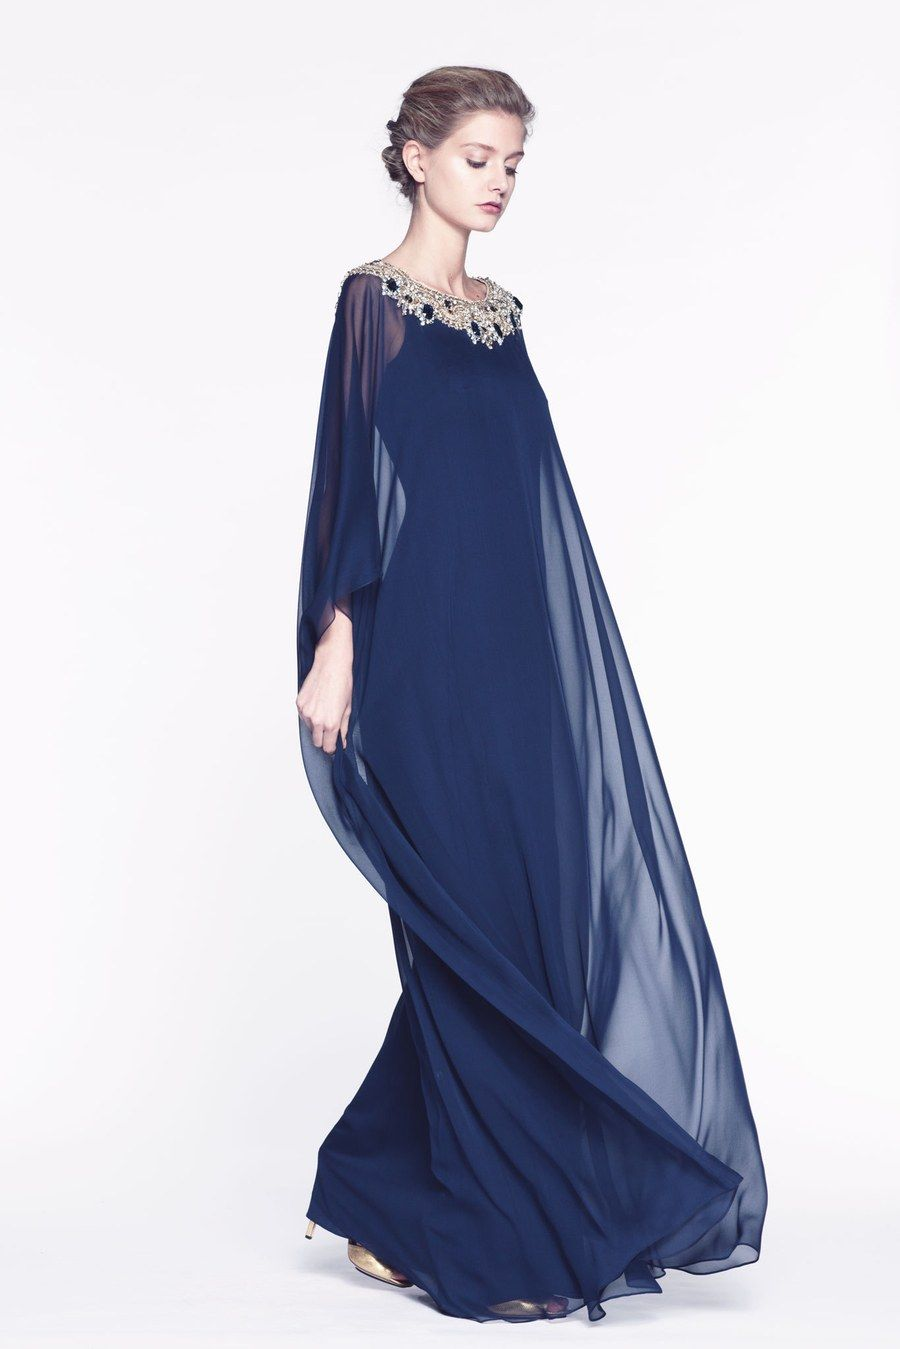 Reem acra prefall fashion show collection models and clothes